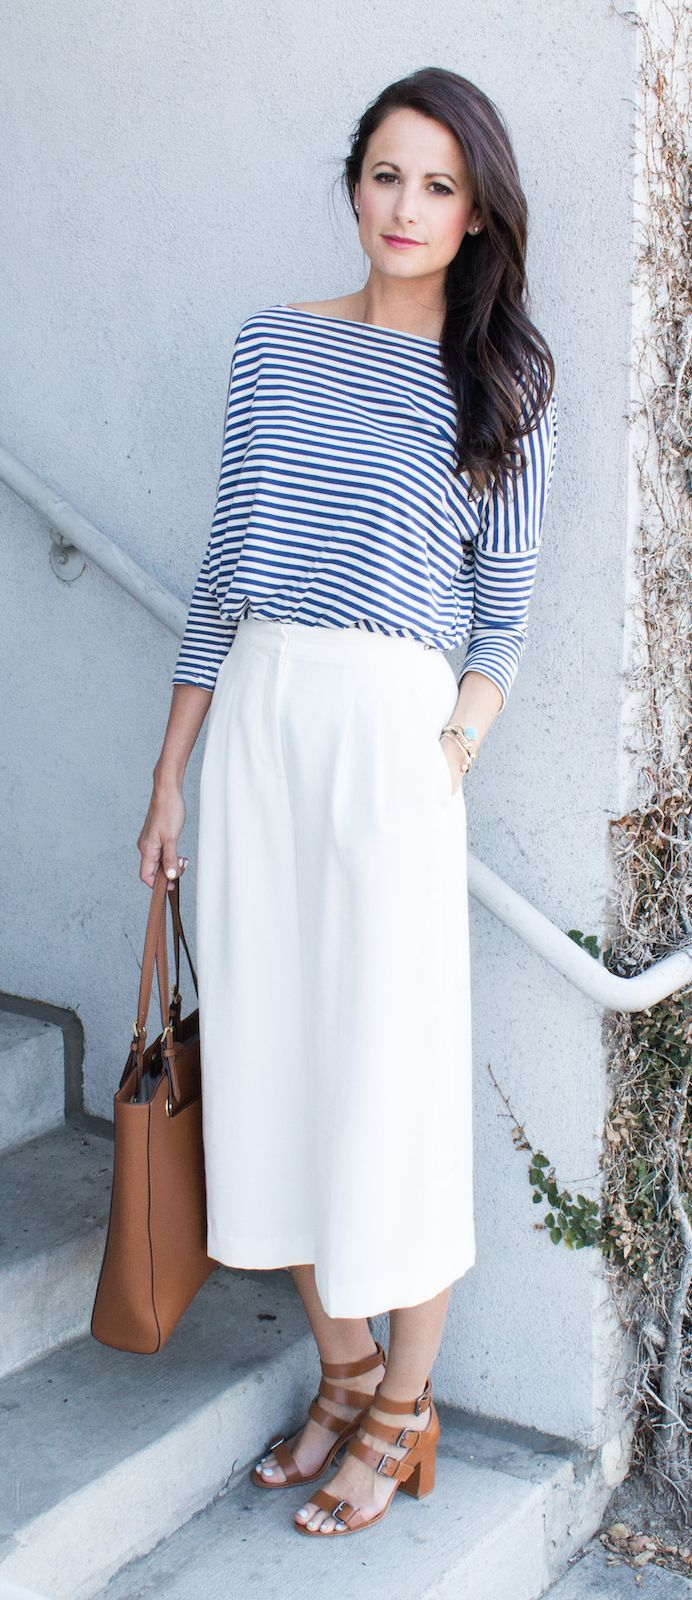 I love these Chelsea28 Culottes from Nordstrom! They make me feel like I am about to jump on a yacht in France! Pair them stripes and tan Zara sandals for an added yacht effect!